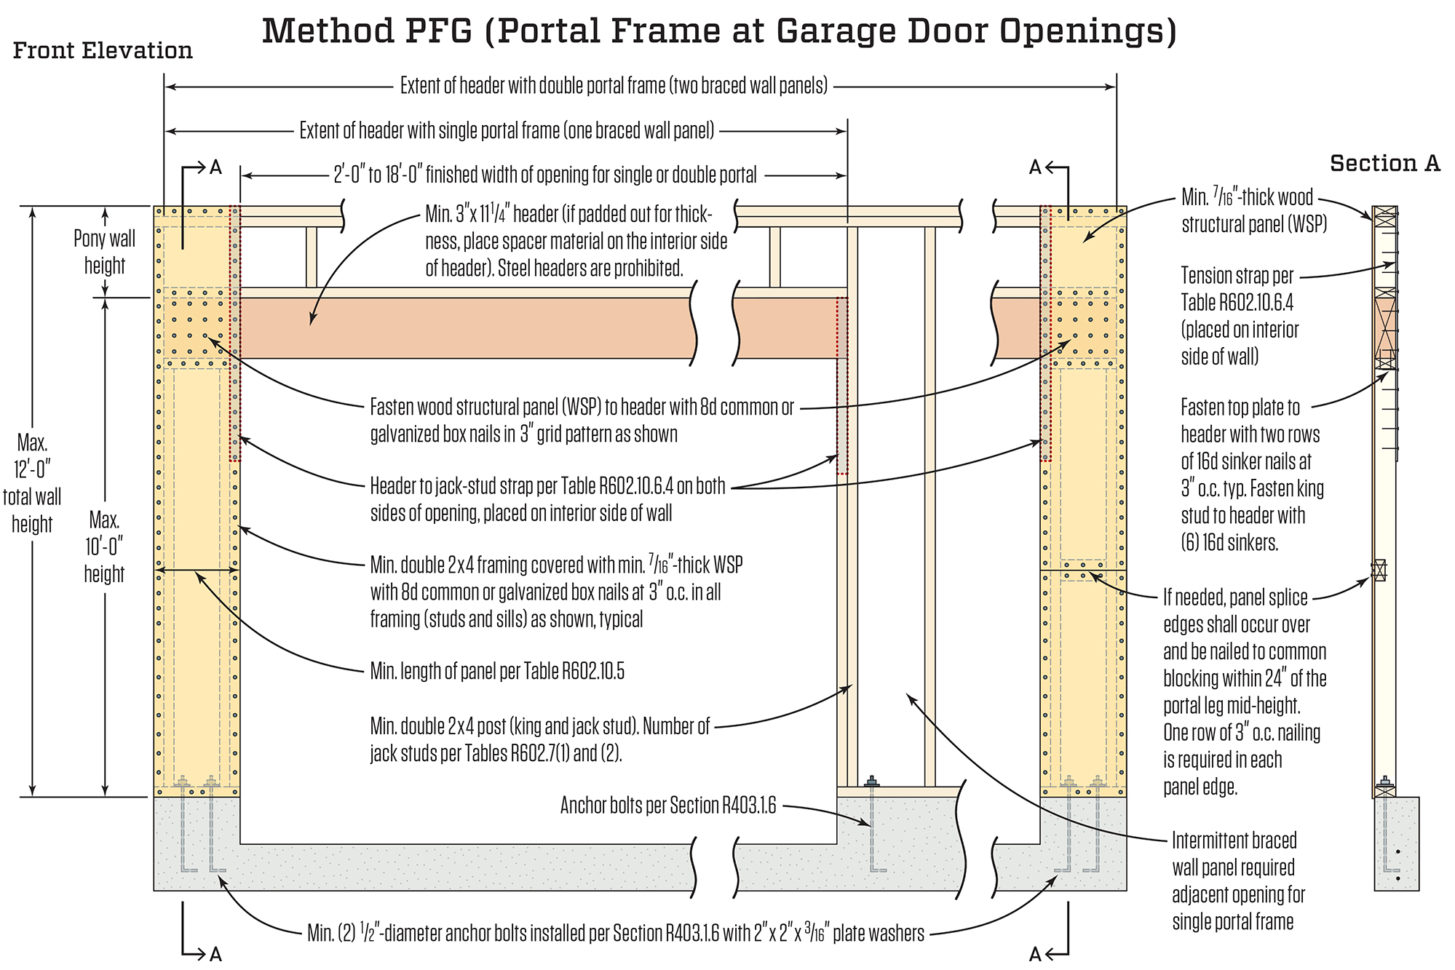 Portal Frame Design Spreadsheet In The Portal Frame Option  Jlc Online  Storm And Wind Resistance